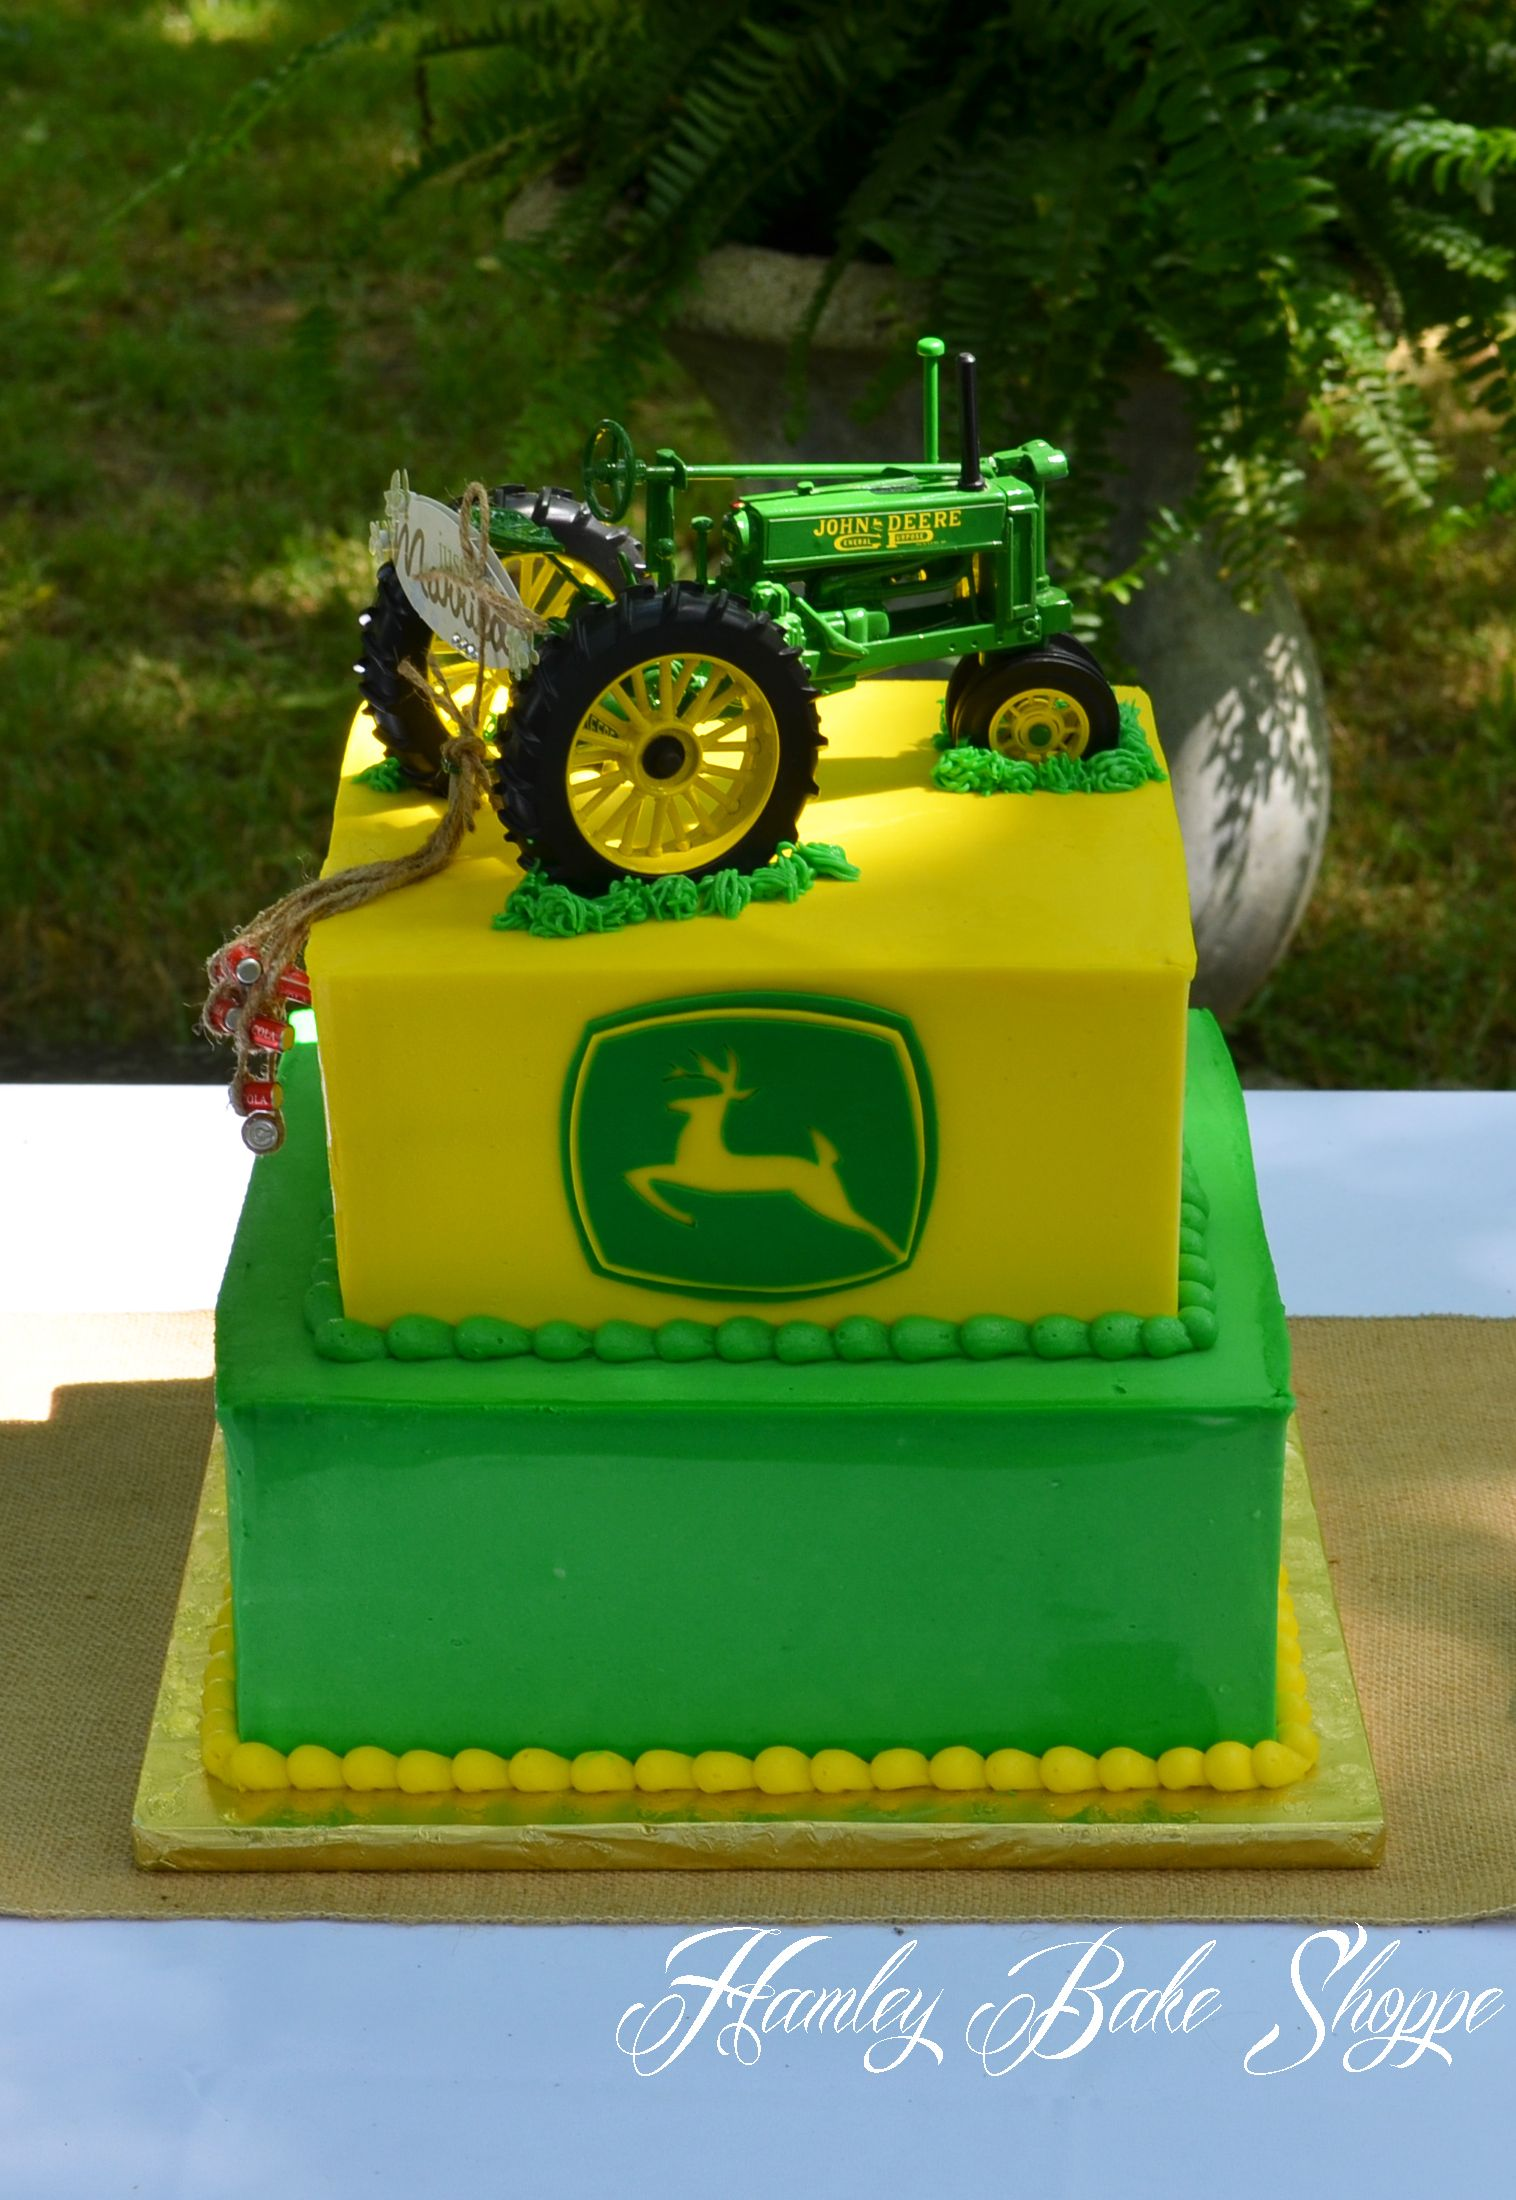 John Deere Tractor Cake Decorating Kit The Best Cake Of 2018